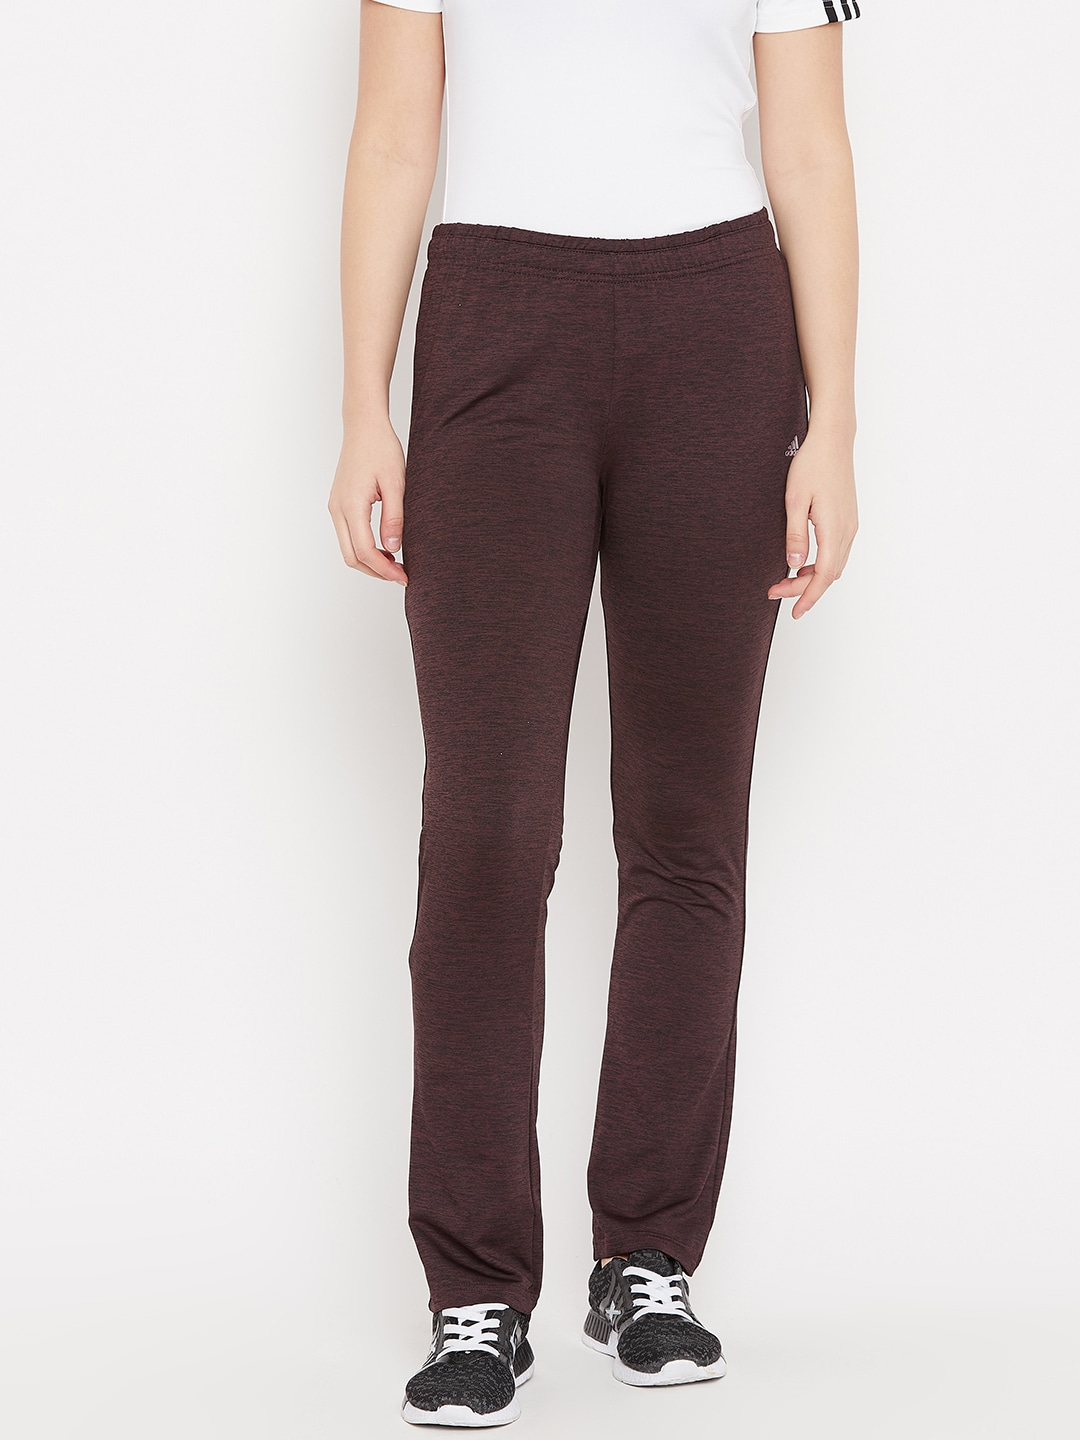 Women Adidas Track Pants Pants - Buy Women Adidas Track Pants Pants online  in India 9bb109310d